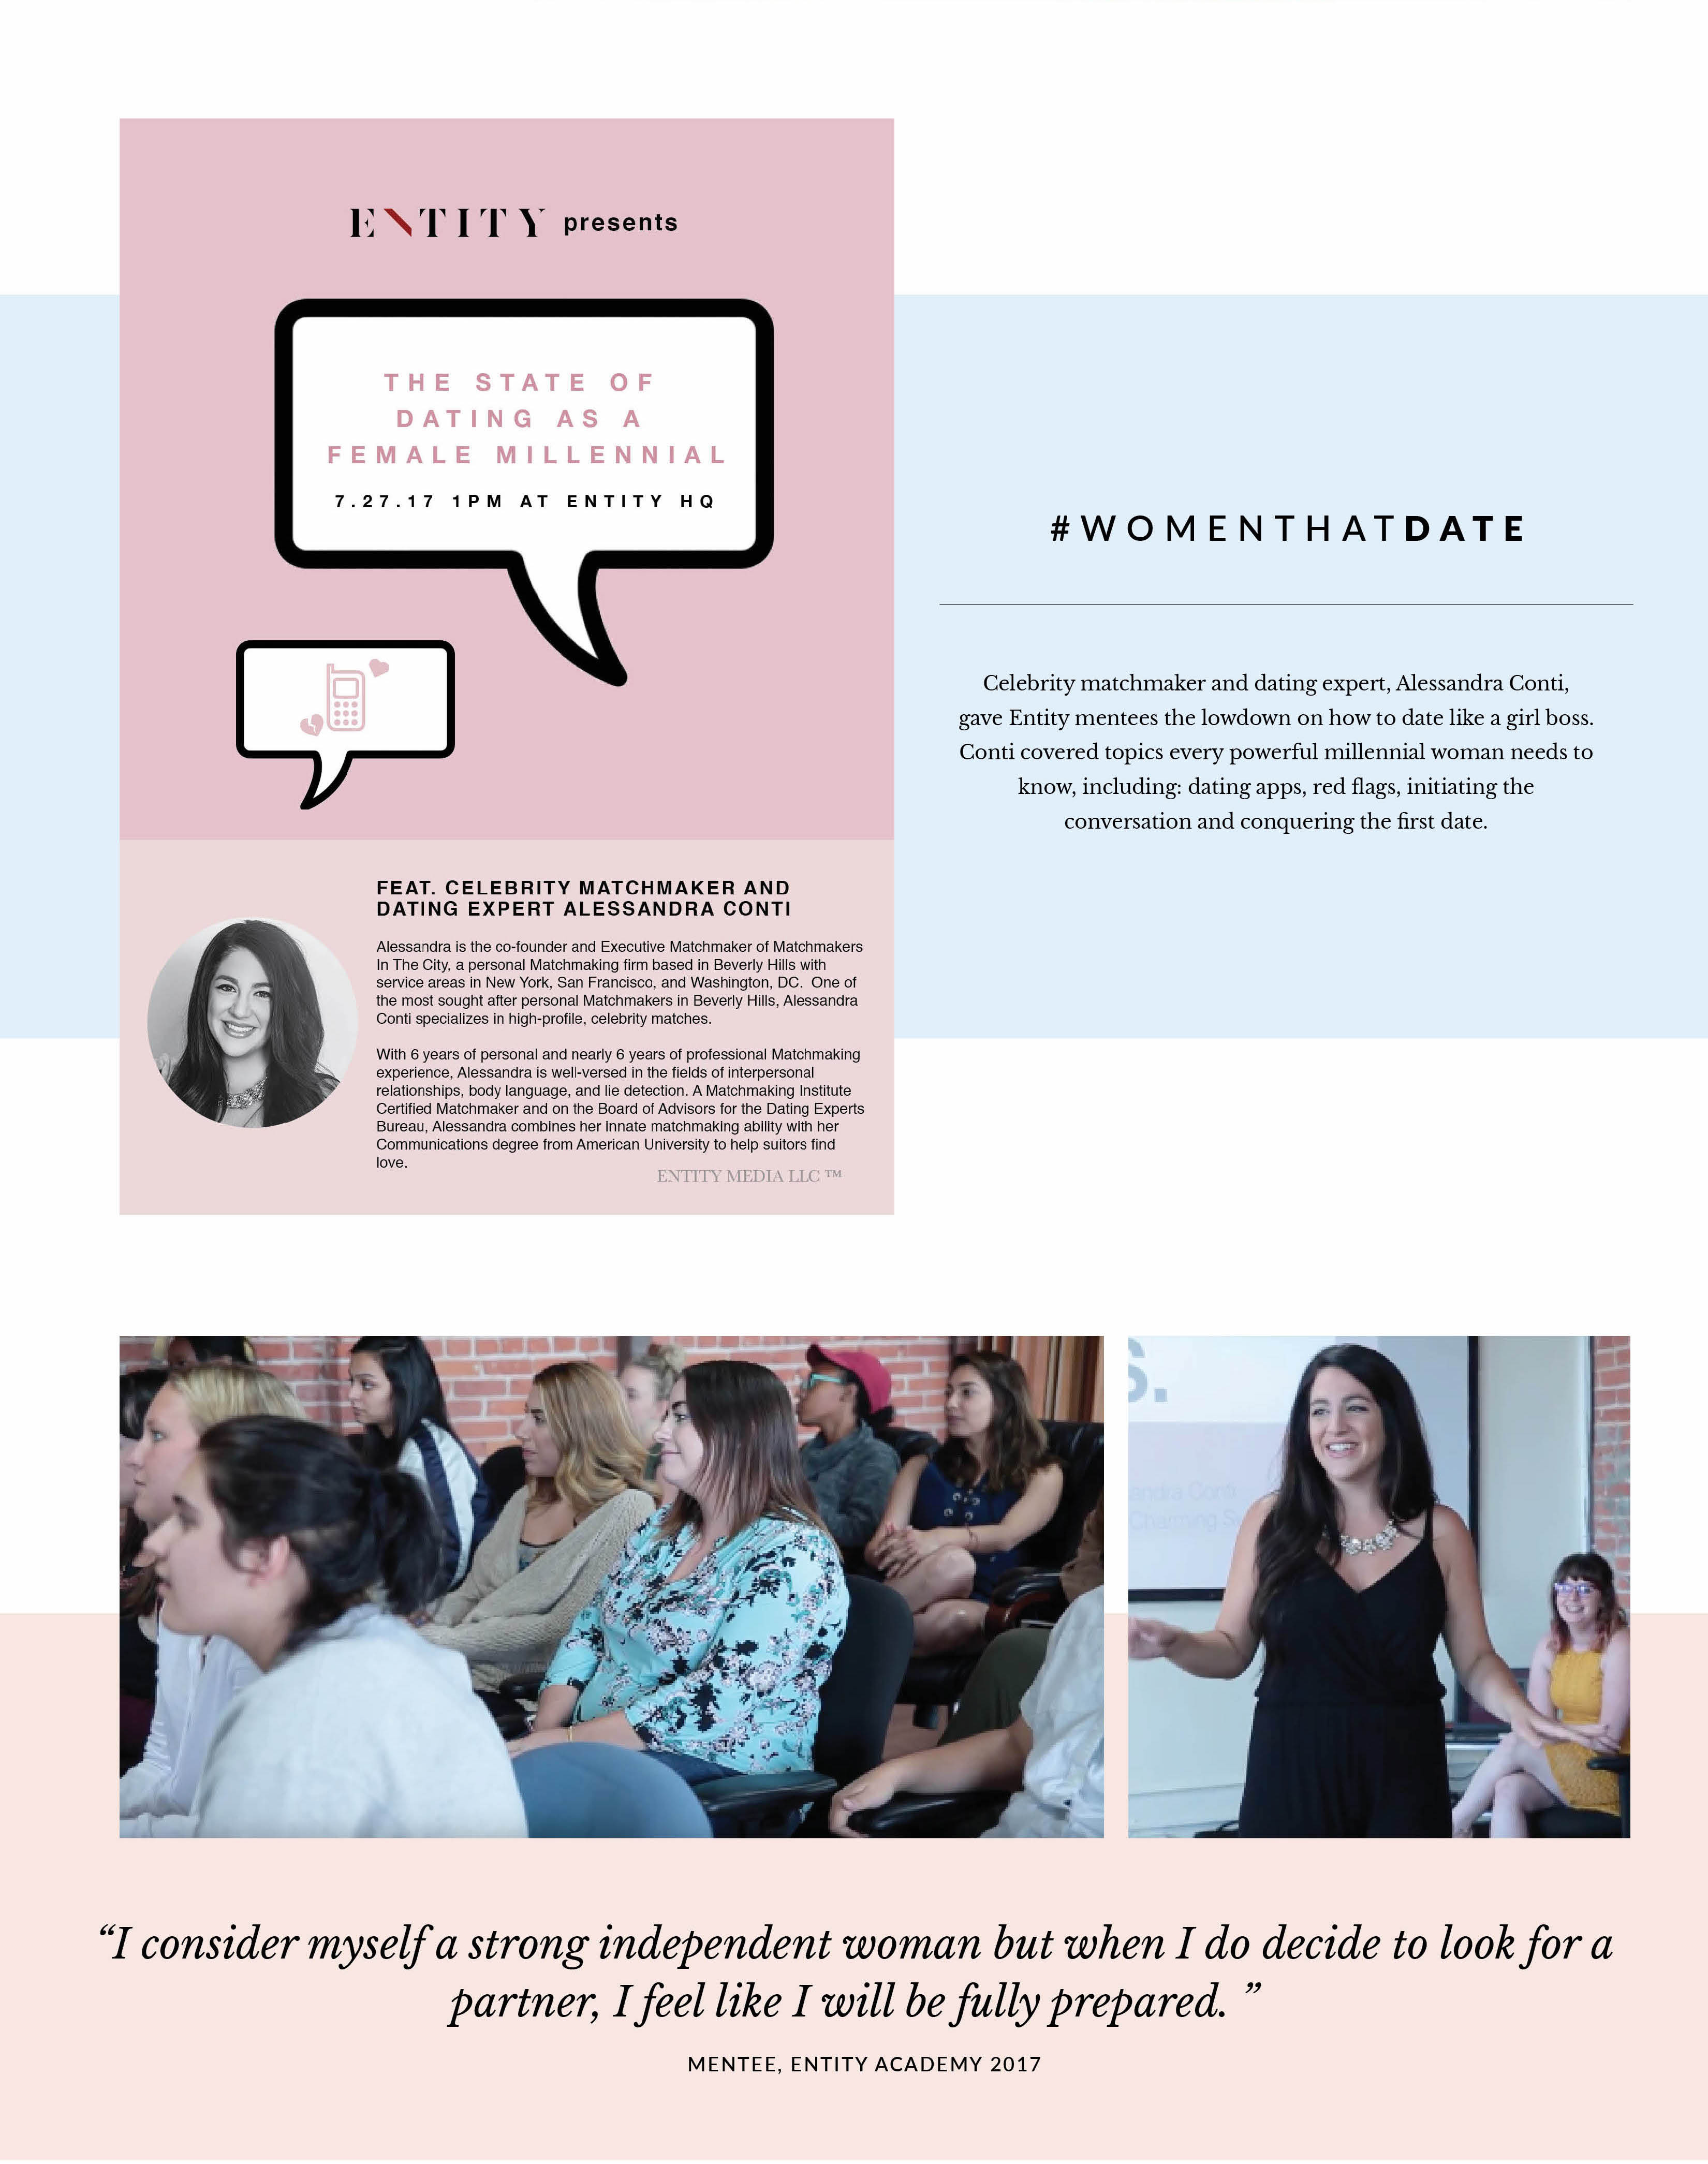 ENTITY brought matchmaker Alessandra Conti to speak about the state of millennial dating.